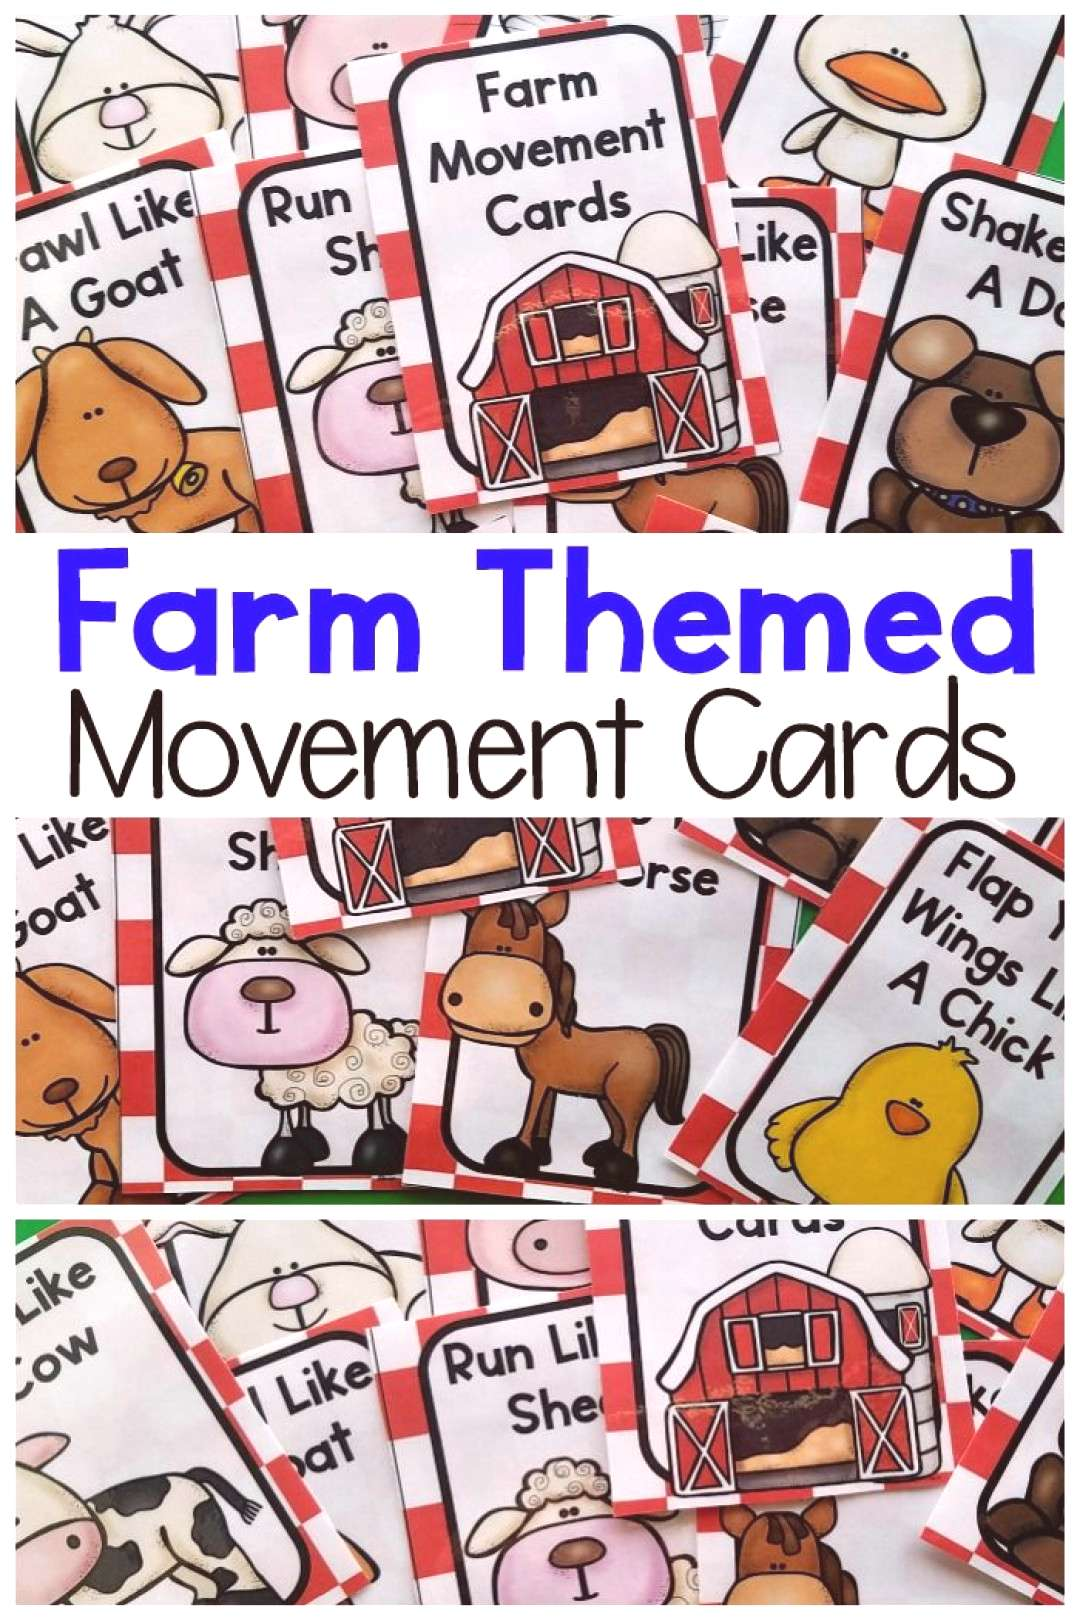 Farm themed activities that involve movement! These are perfect for your farm themed preschool or